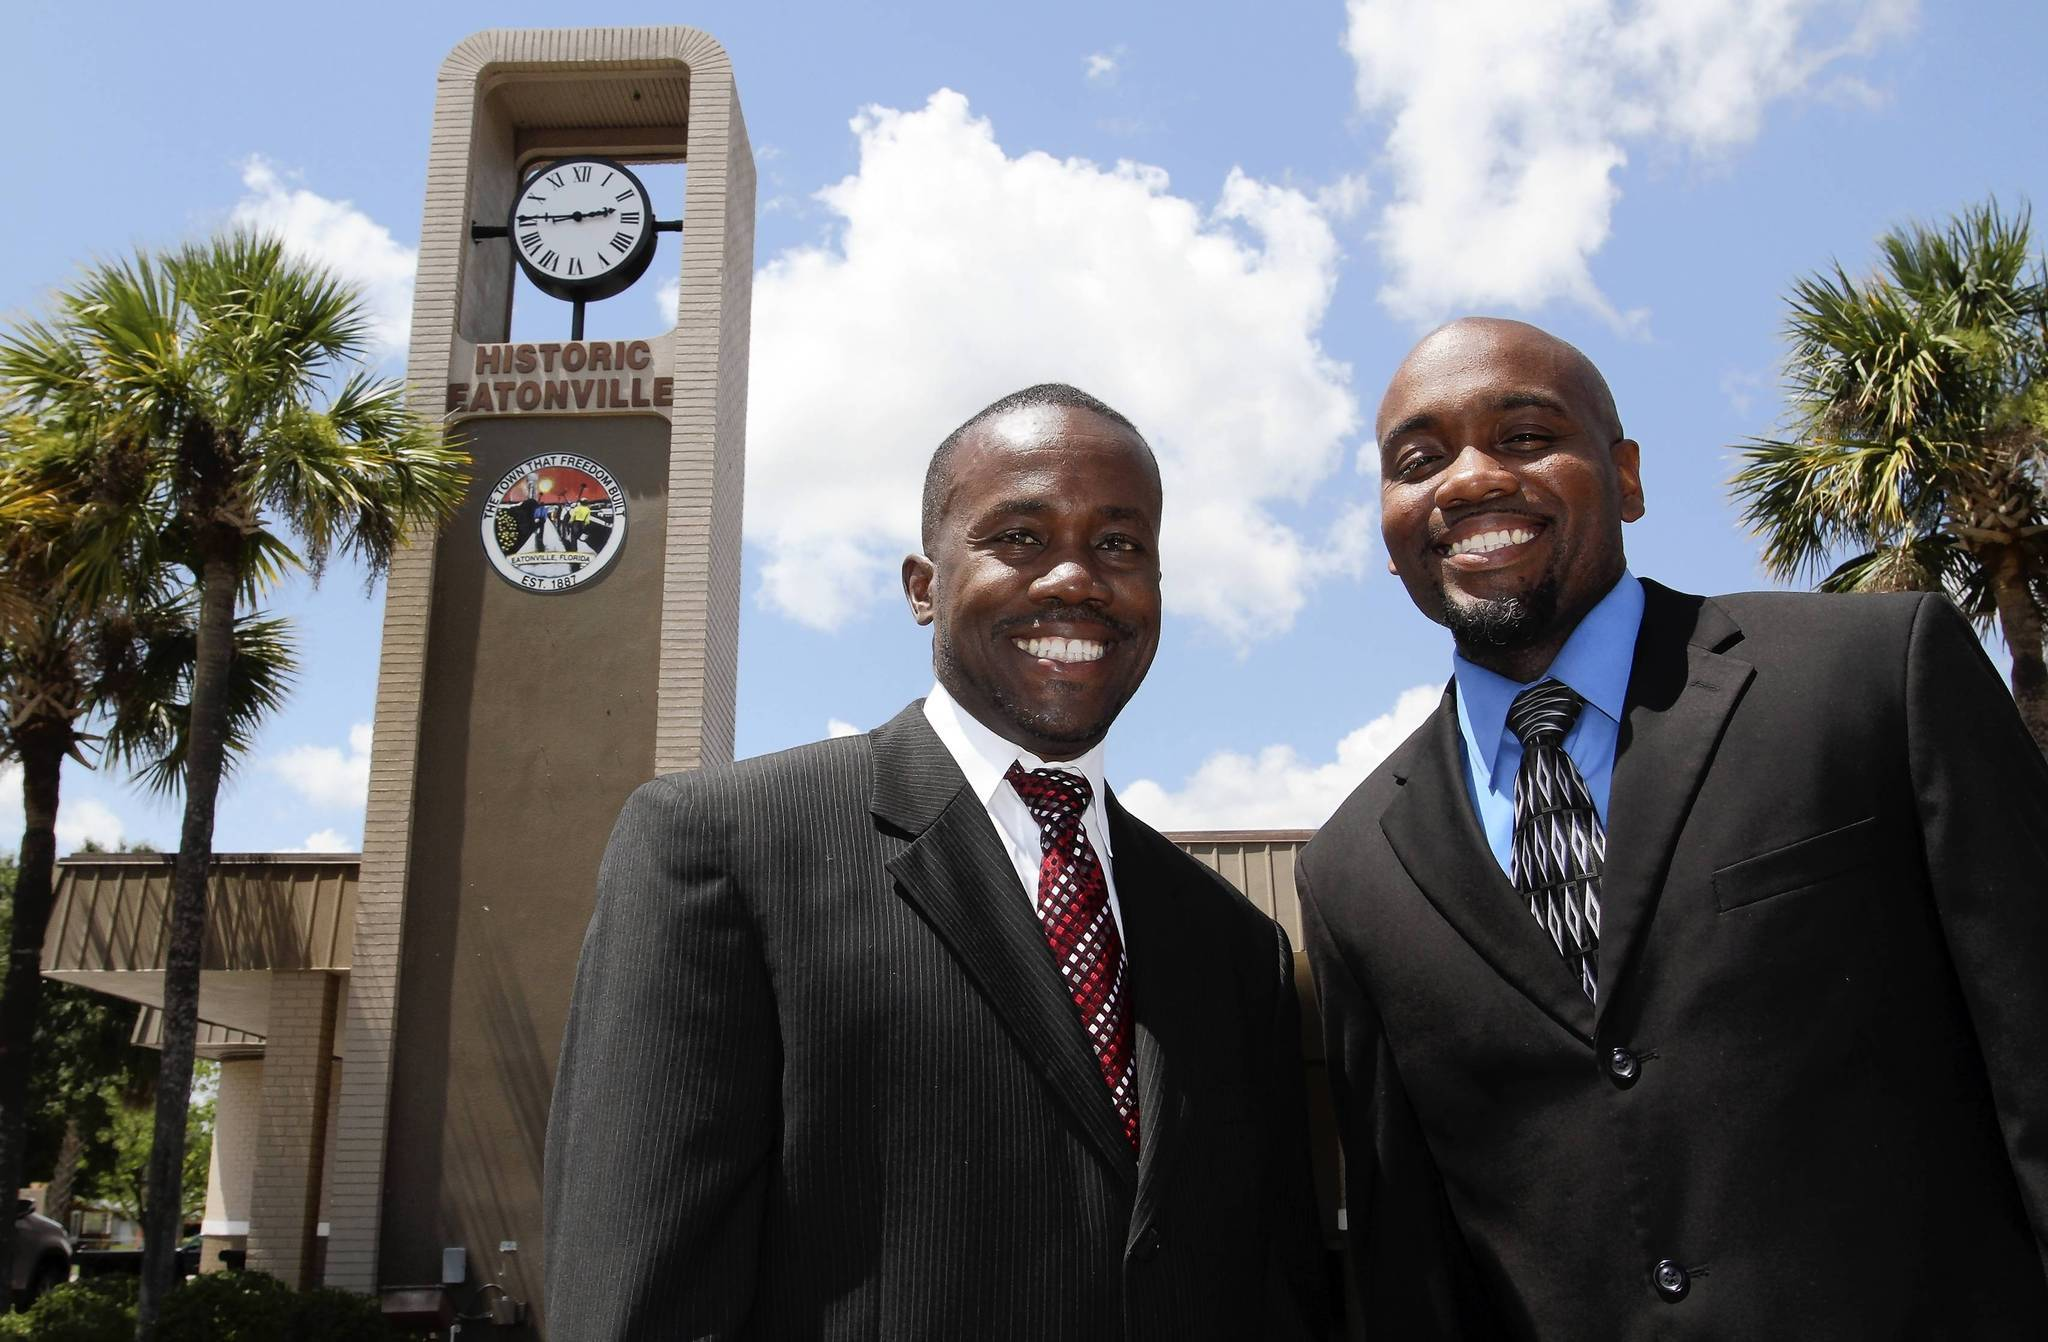 Left to Right, Eddie Cole and Rodney Daniels outside Eatonville Town Hall, on Friday, May 25, 2012.  Two decades ago, Eatonville resident Eddie Cole organized and led Every Kid Outreach, a youth enrichment program that sought to give Eatonville youth role models and the support they needed to start and maintain careers. One of those youths was Rodney Daniels, who describes Cole as a mentor. Today, the men sit next to each other in big black chairs every two weeks as members of Eatonvilles Town Council. The men are close, and Daniels isnt shy about discussing the positive effect Coles had on his life. (Ricardo Ramirez Buxeda / Orlando Sentinel)